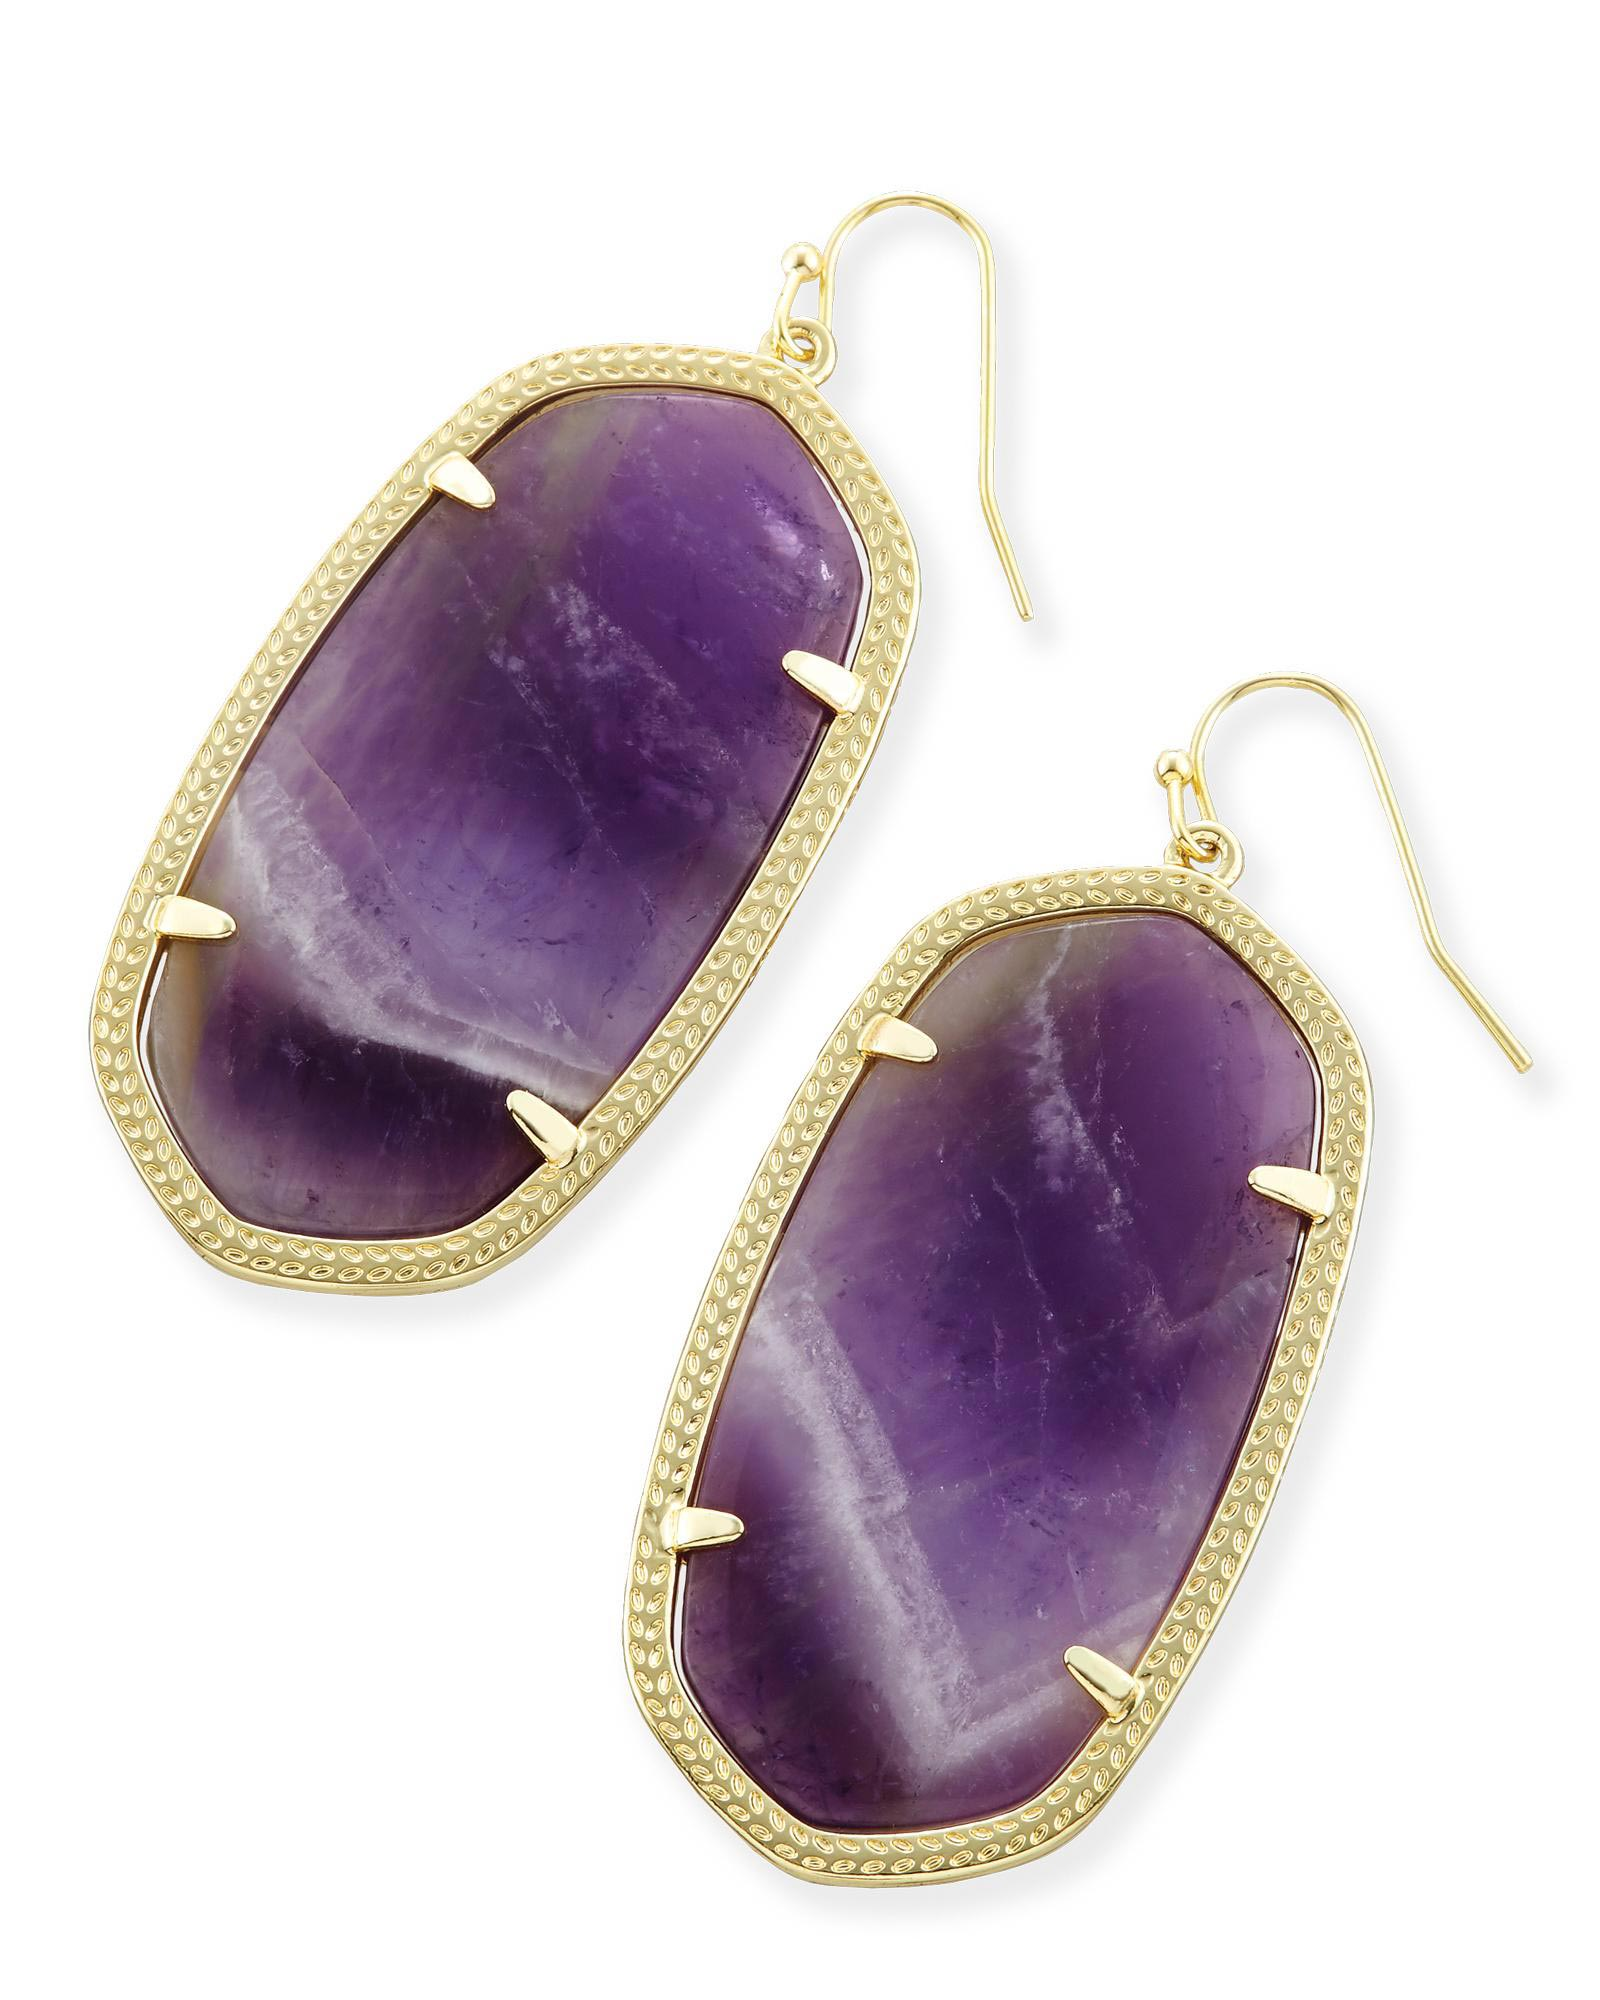 Danielle Statement Earrings in Chevron Amethyst